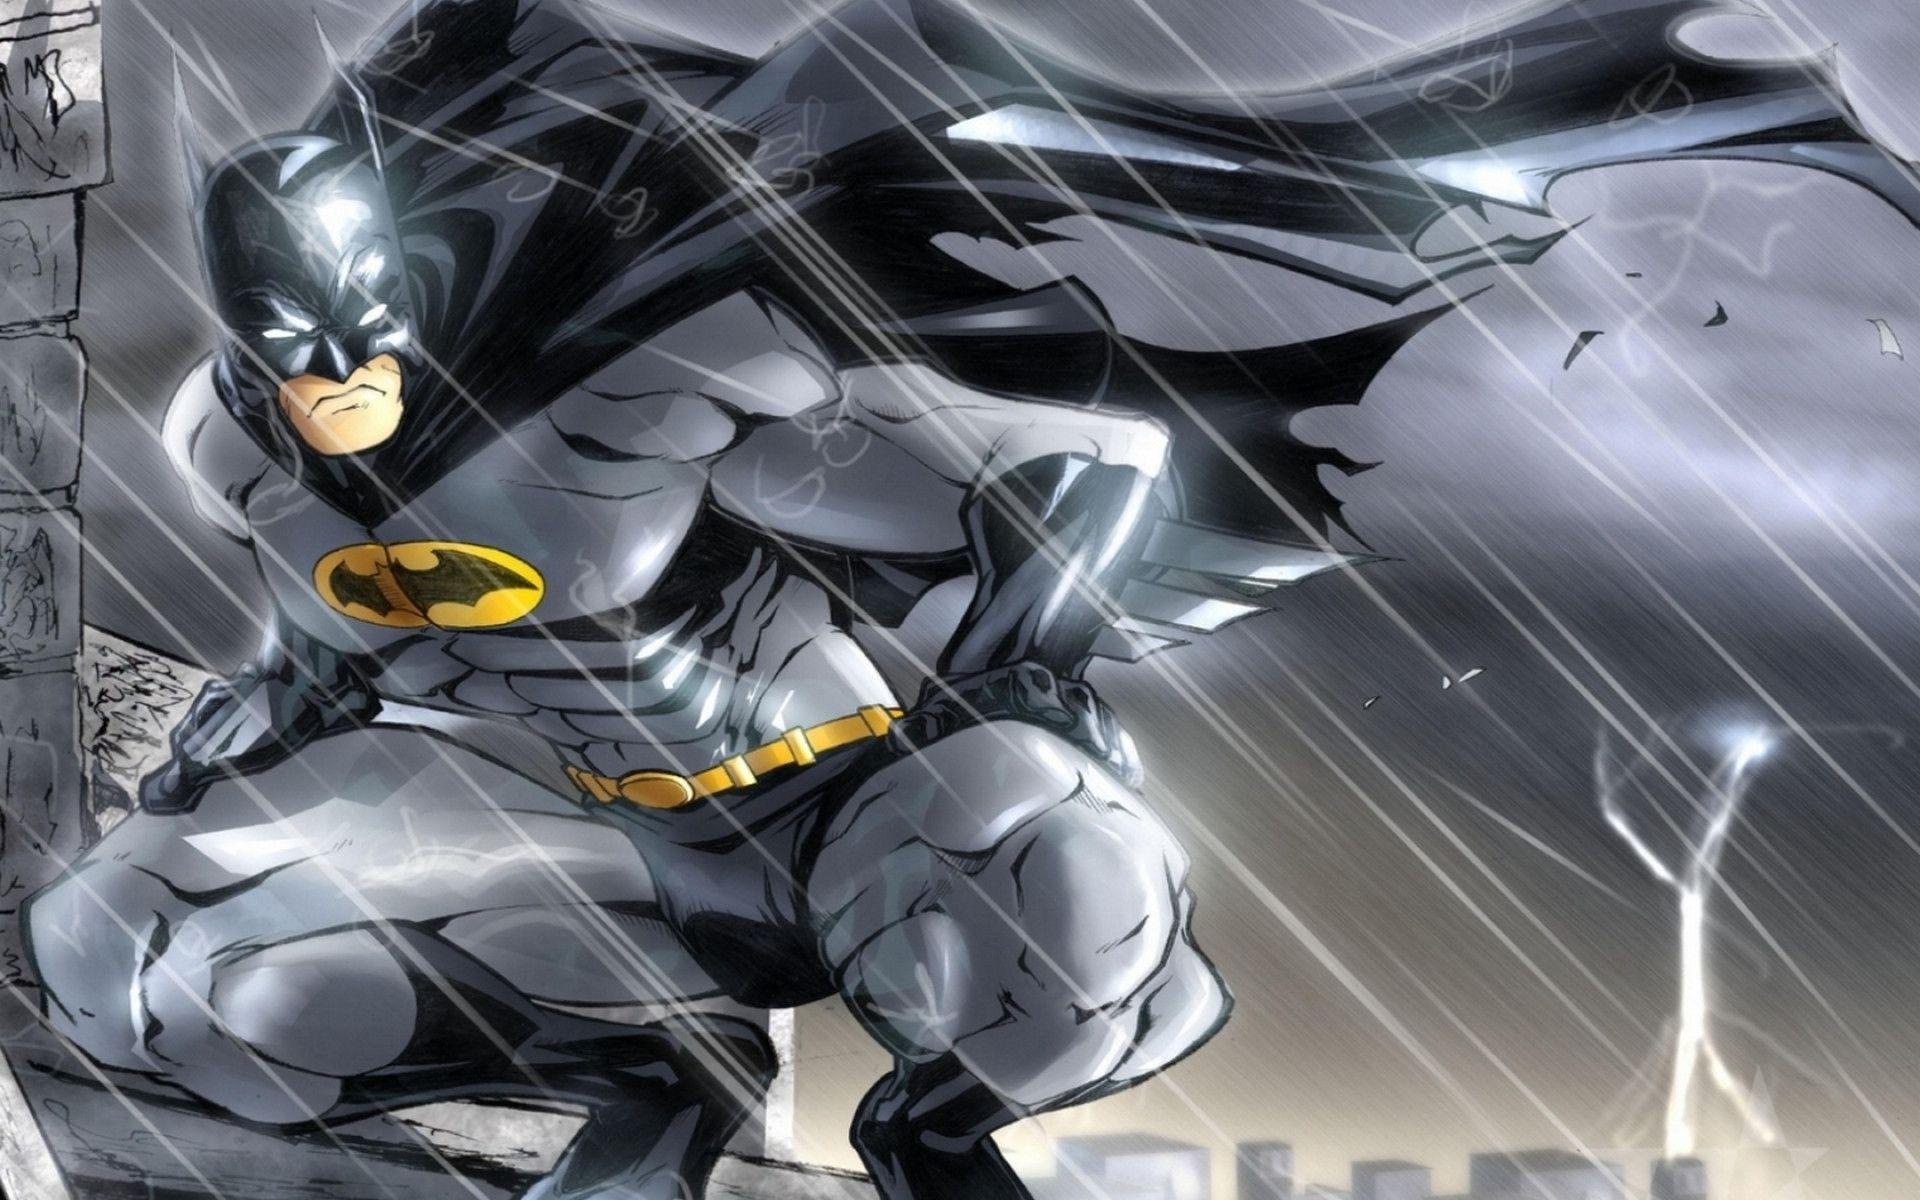 comics batman background hero - photo #10